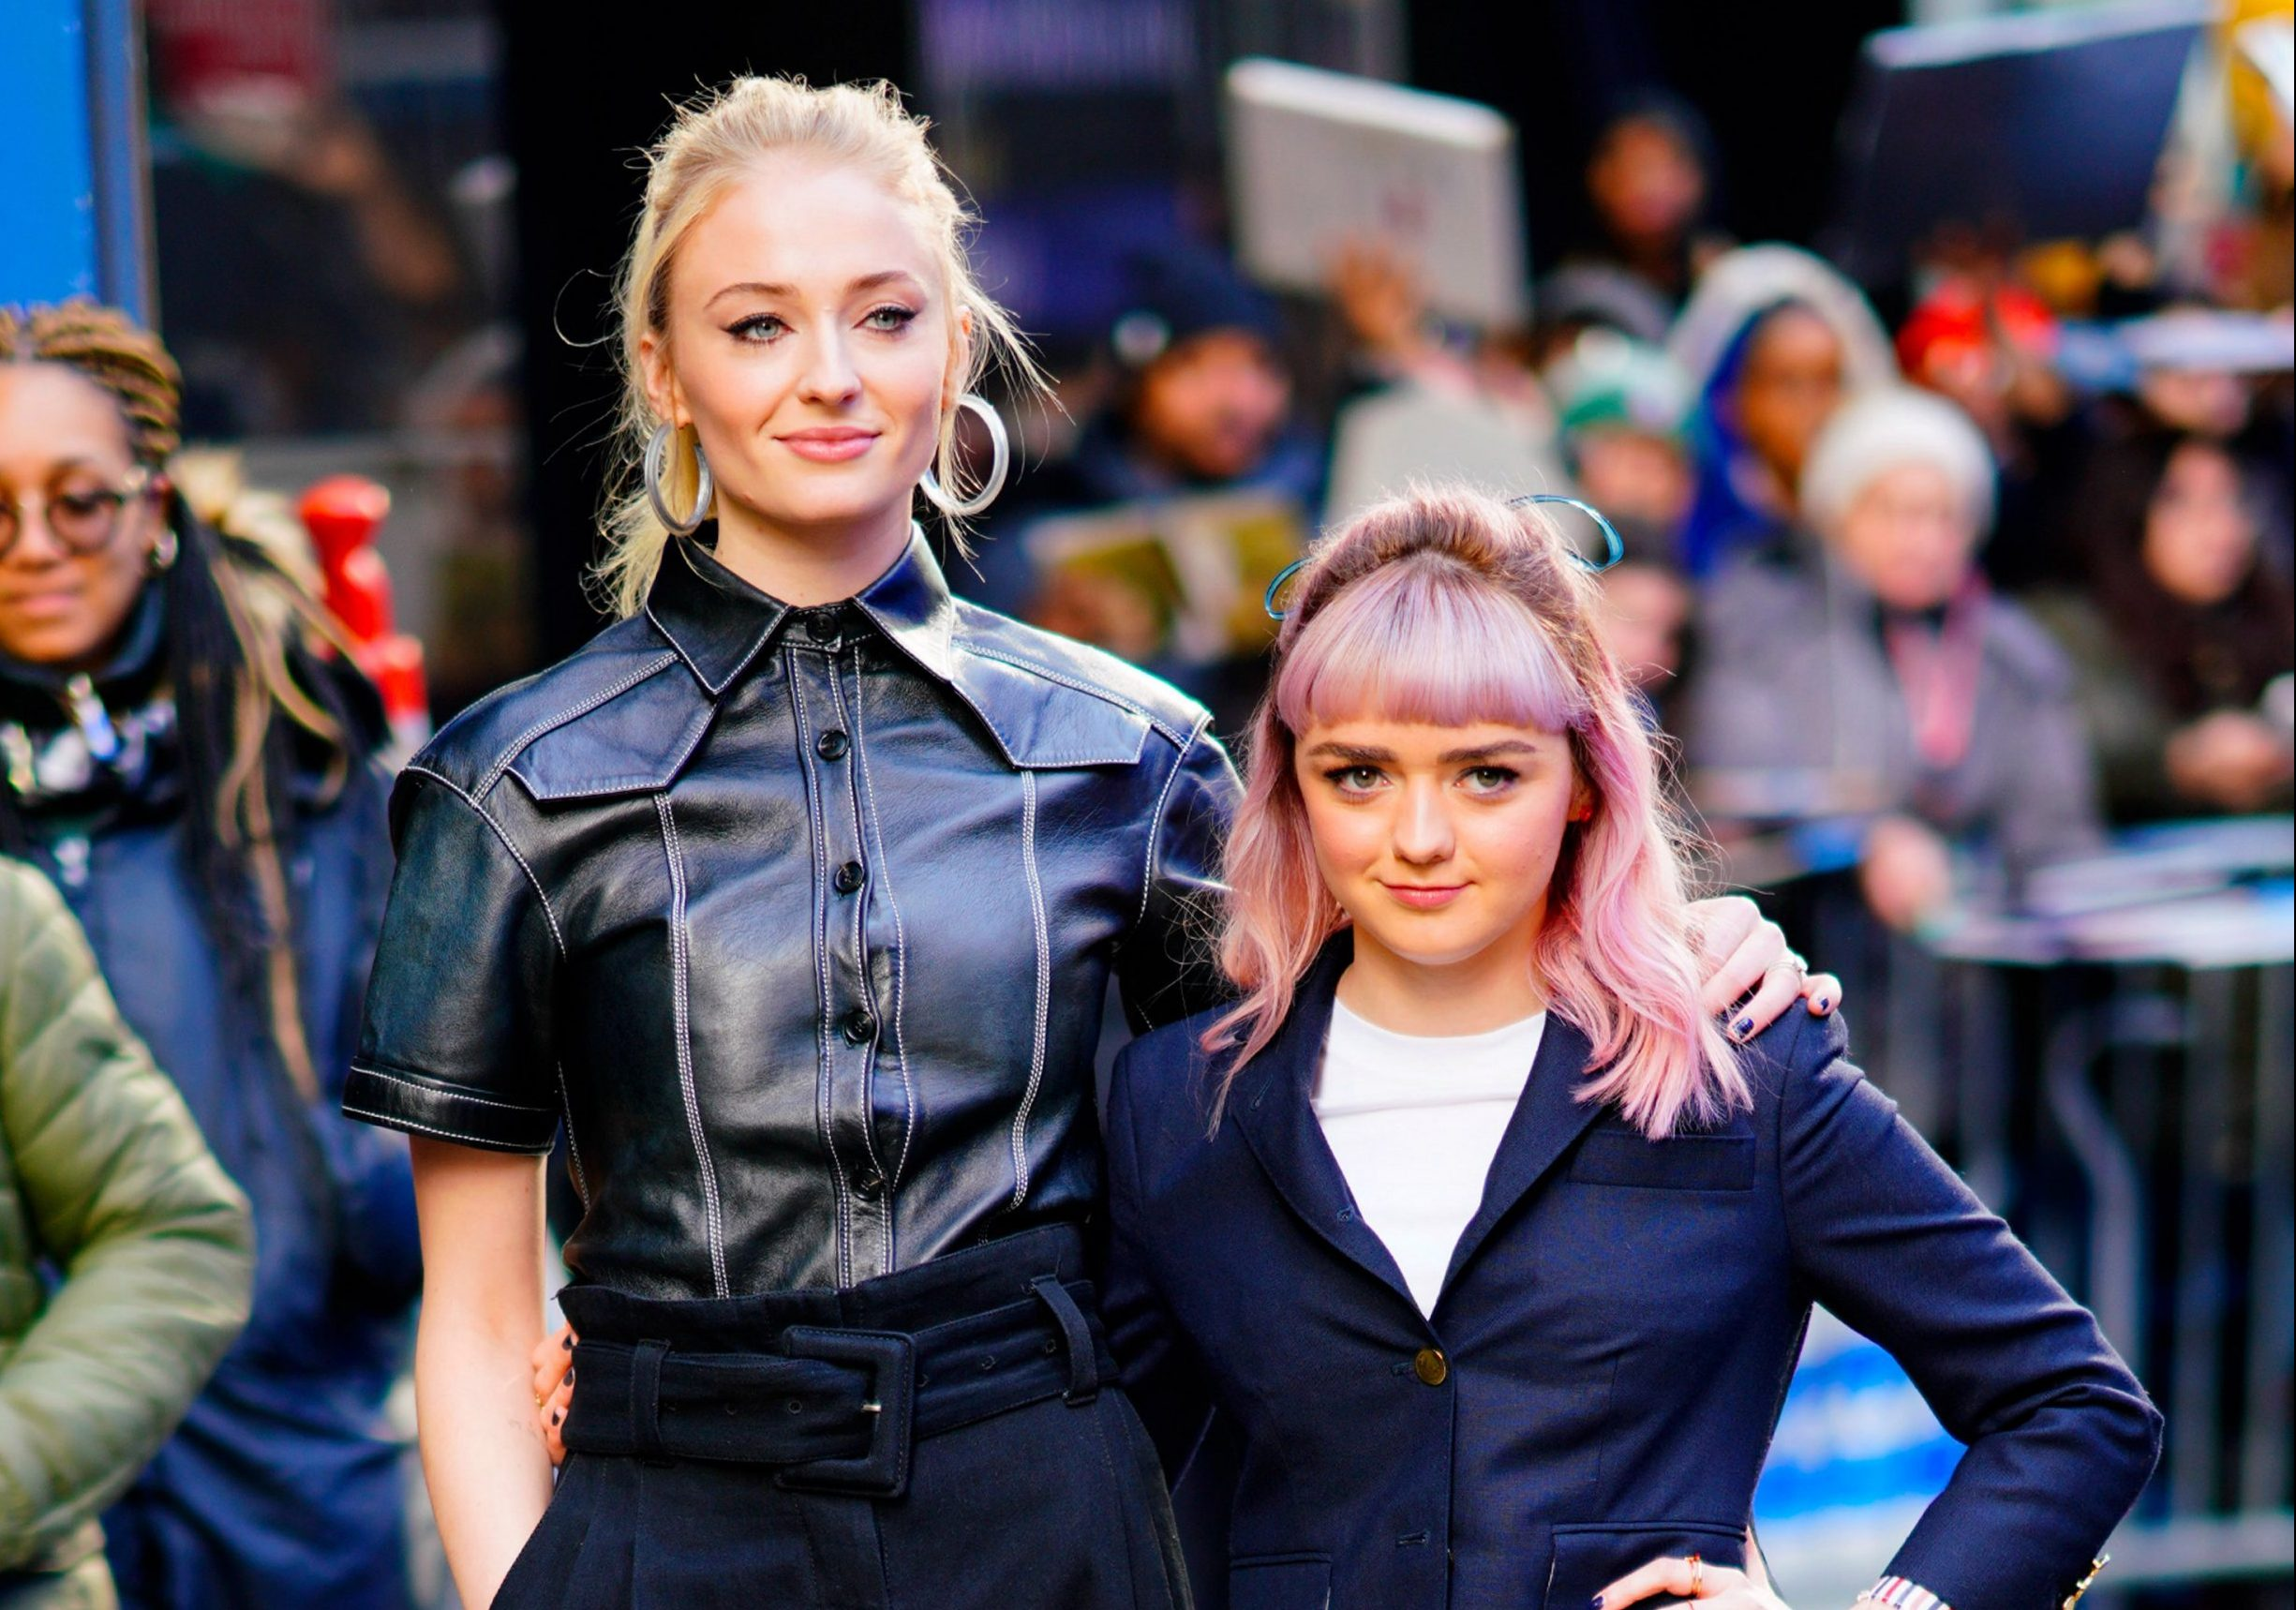 Sophie Turner confirms Game Of Thrones co-star Maisie Williams will be her Maid of Honour when she marries Joe Jonas